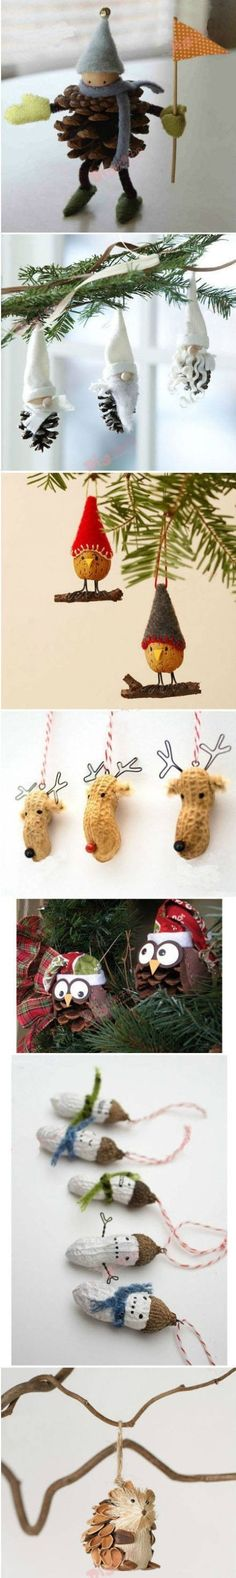 tiny ornaments made from nuts